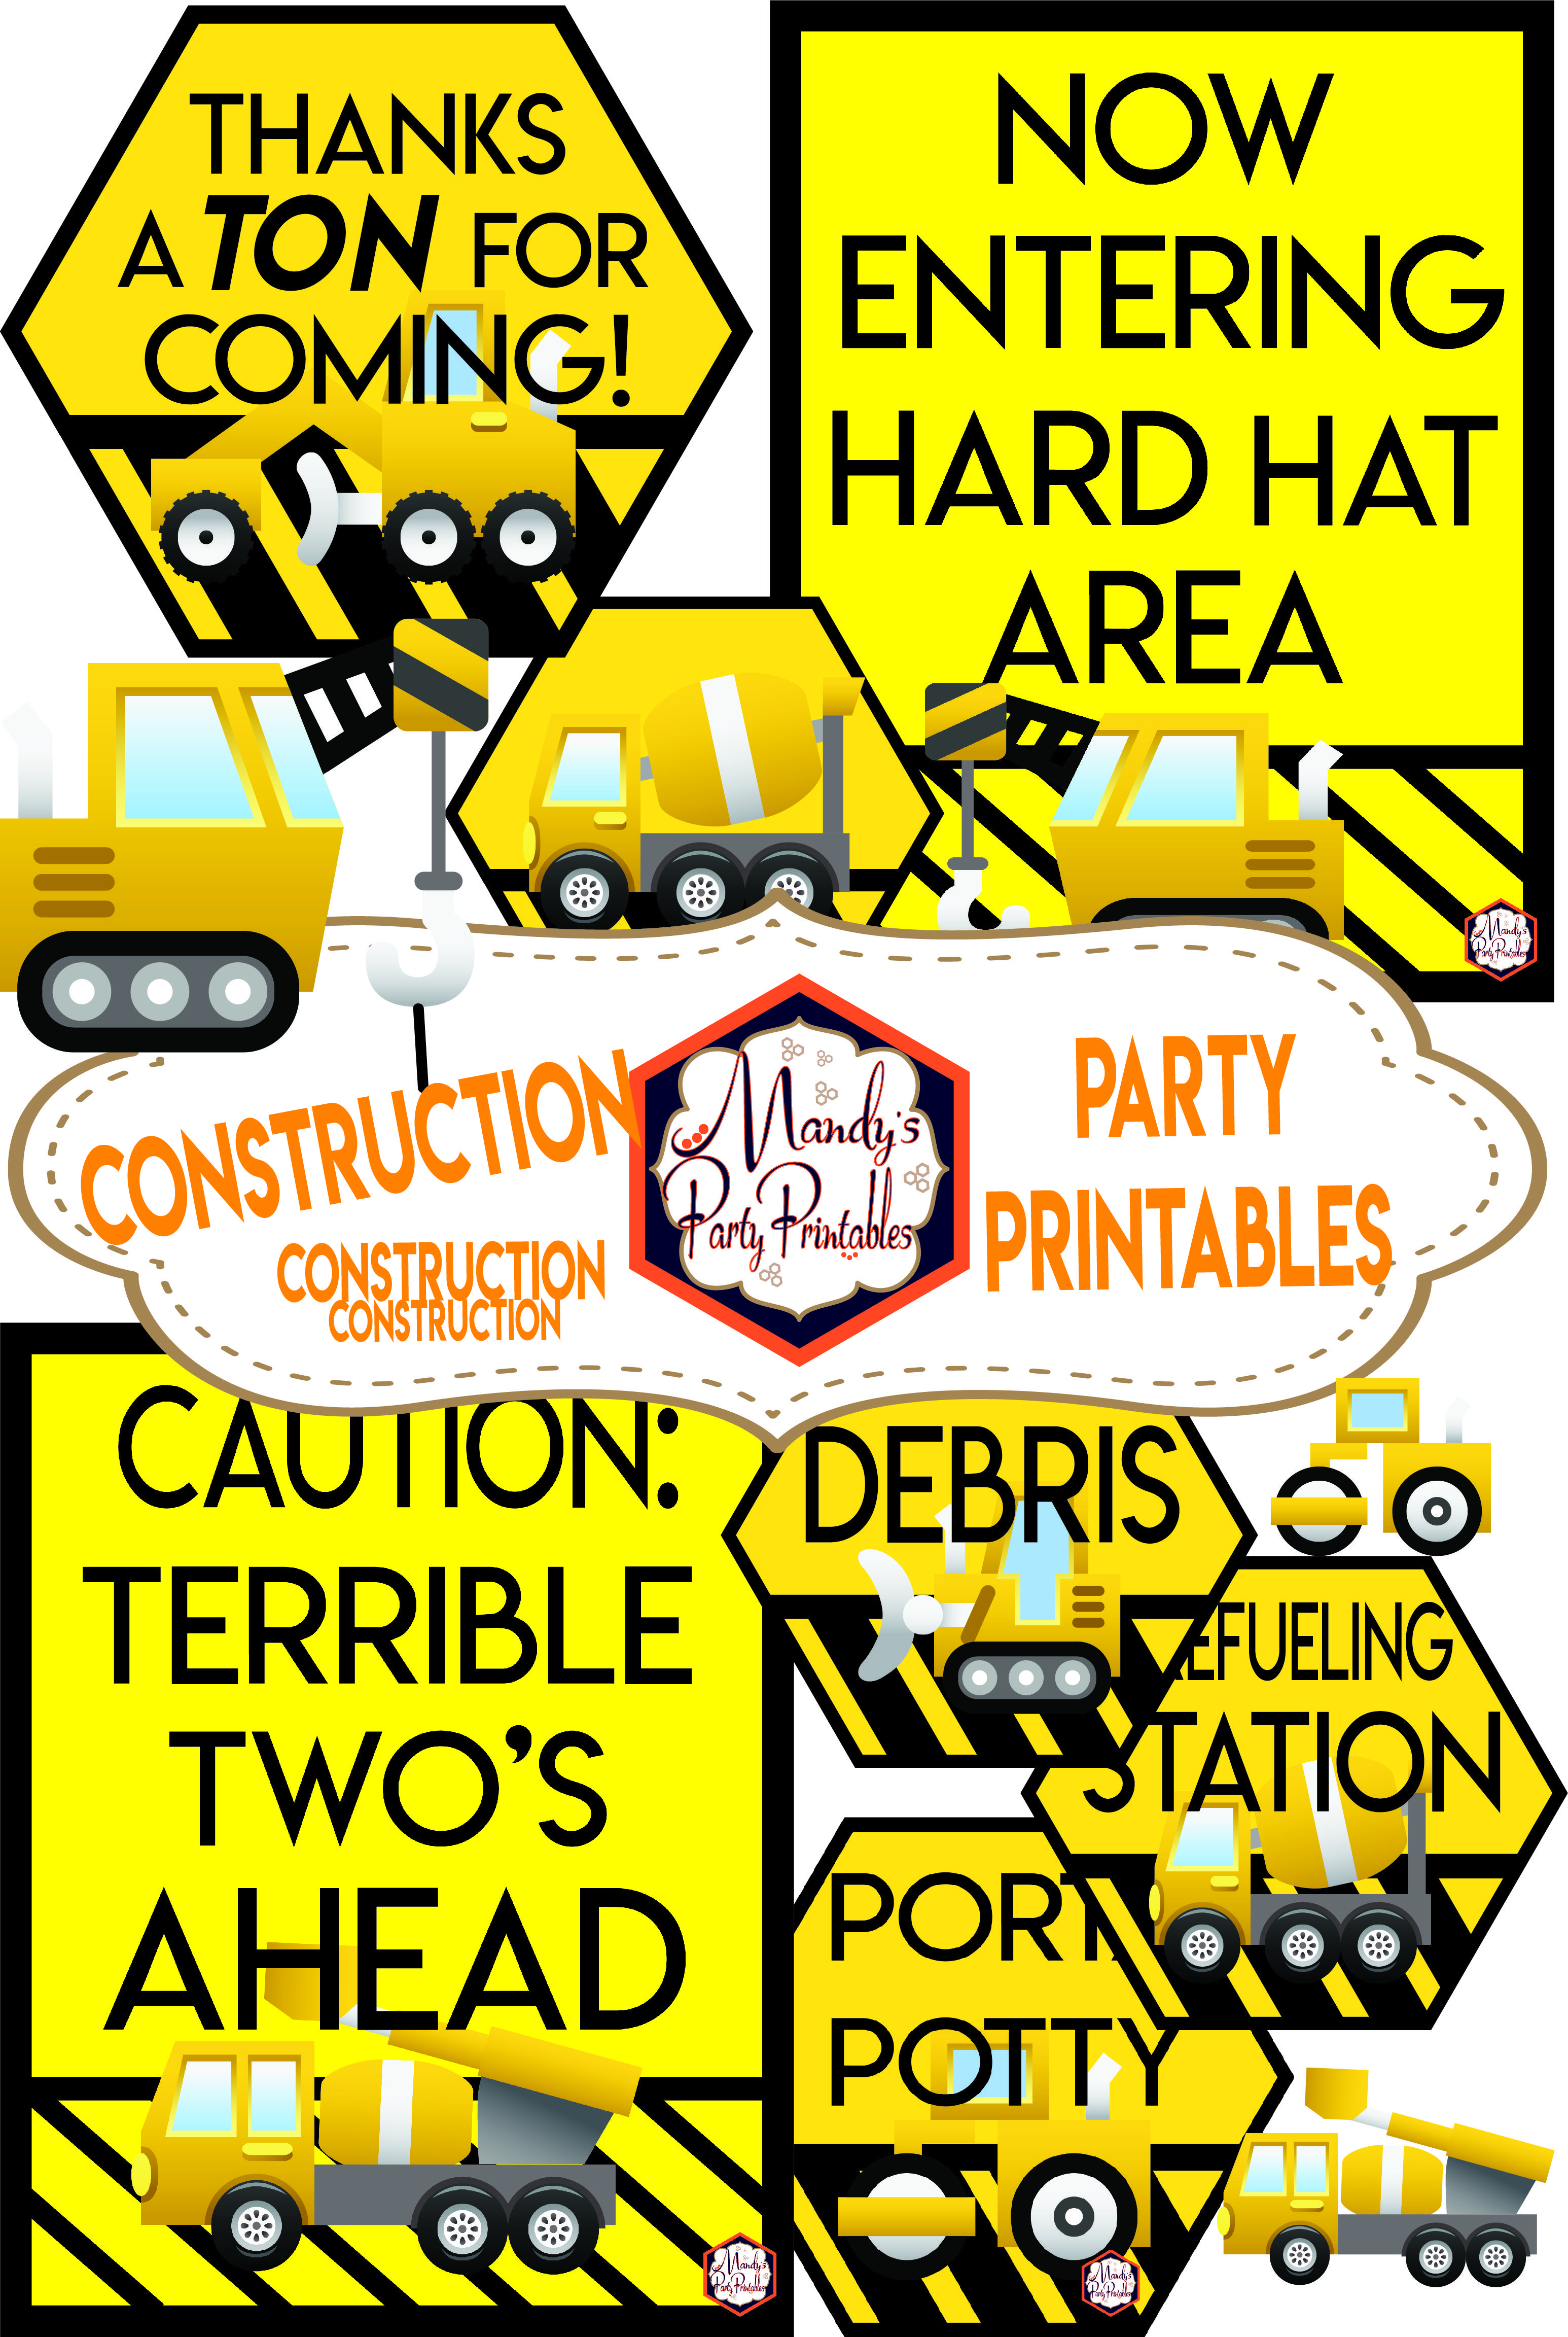 Construction Birthday Party Printables Mandy S Party Printables Construction Birthday Construction Theme Birthday Party Construction Birthday Parties